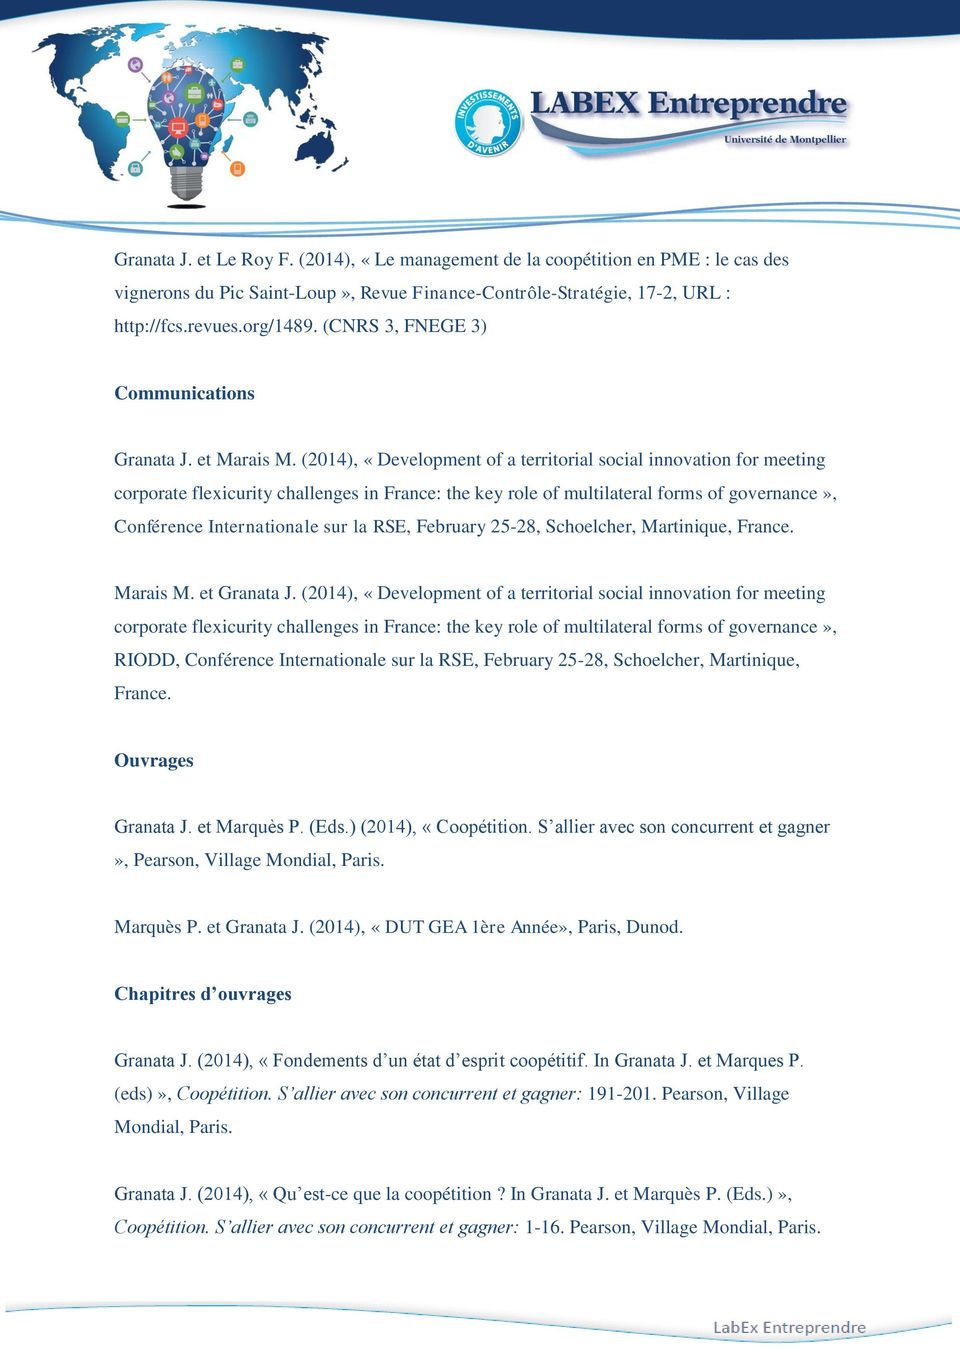 (2014), «Development of a territorial social innovation for meeting corporate flexicurity challenges in France: the key role of multilateral forms of governance», Conférence Internationale sur la